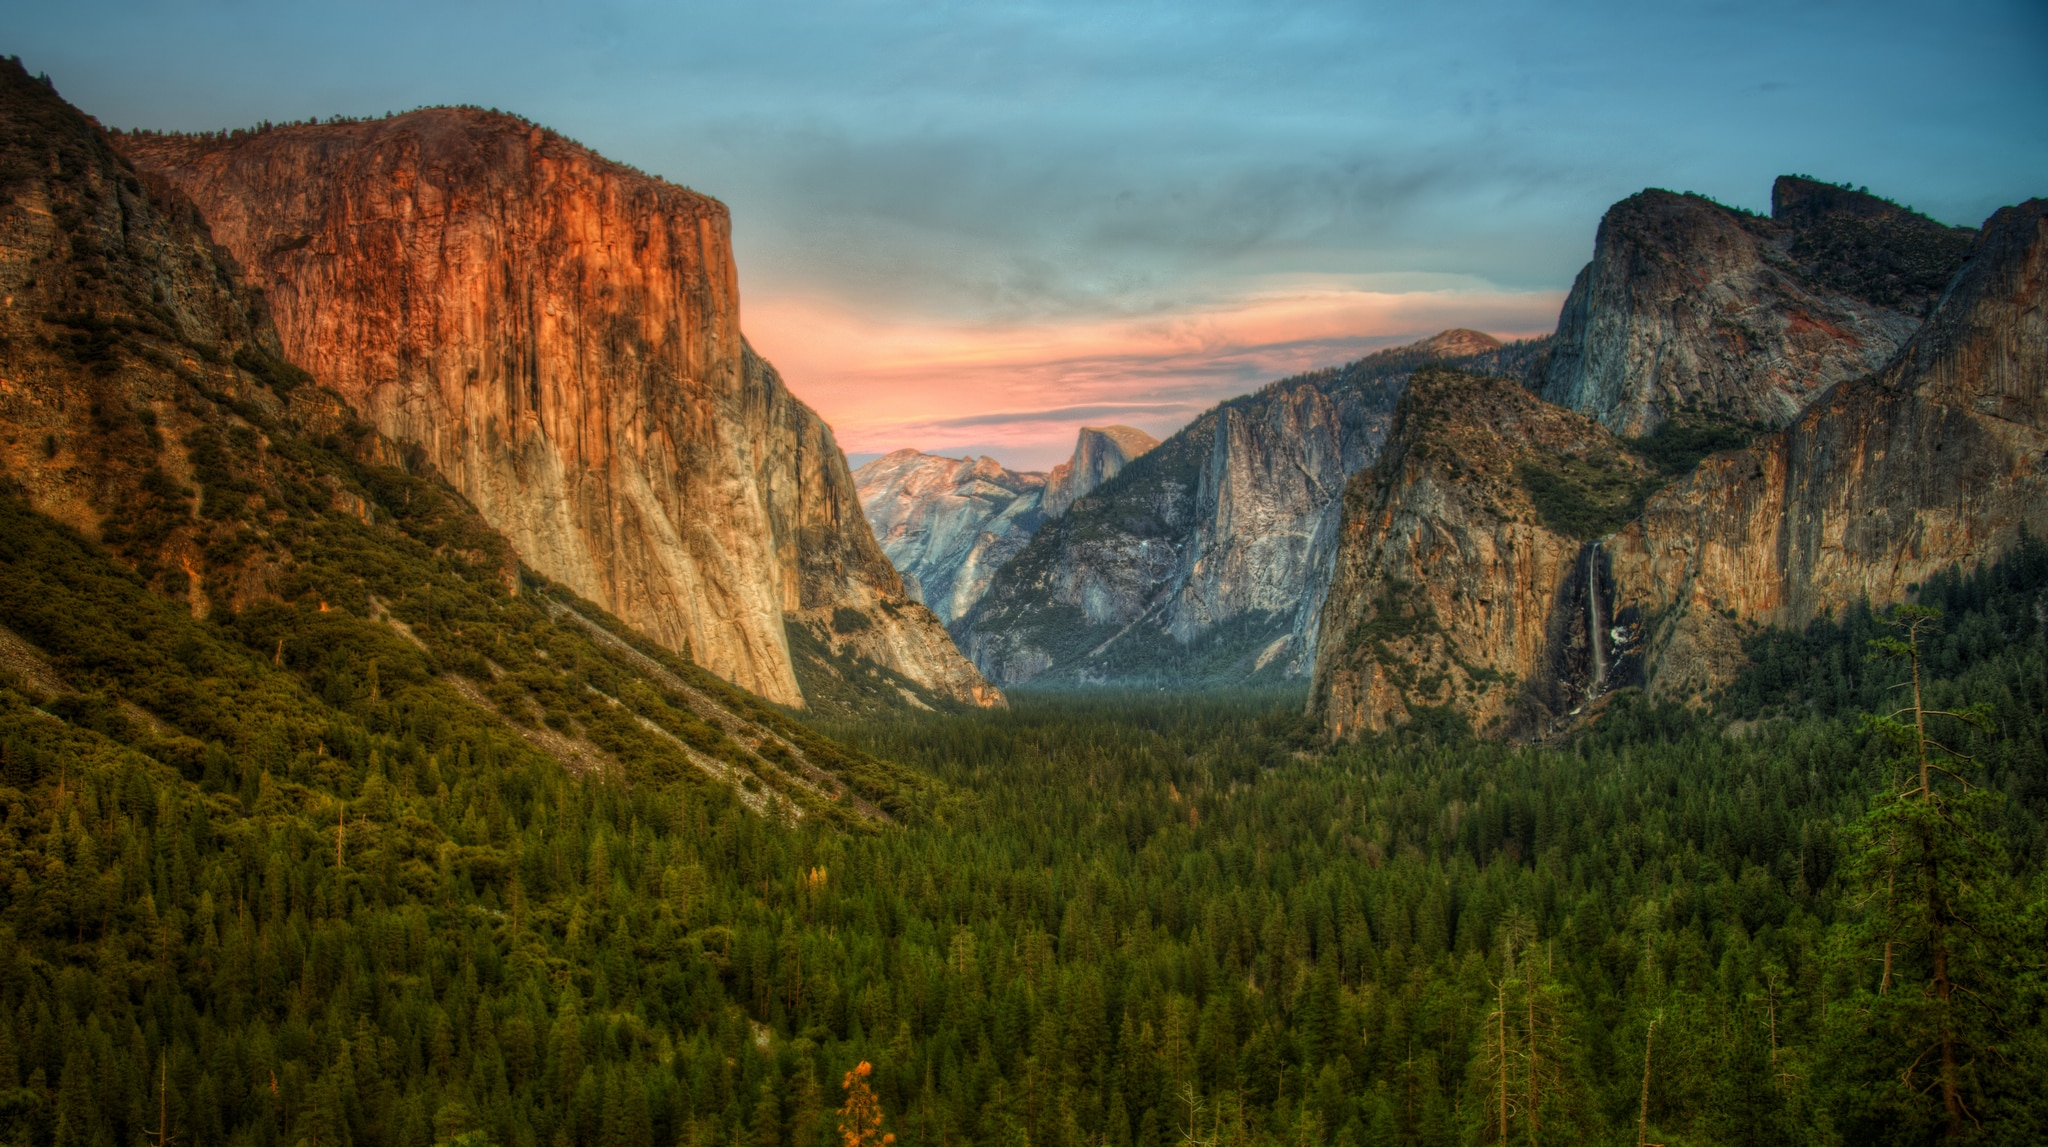 muslim single women in yosemite national park Not just a great valley, but a shrine to human foresight, the strength of granite, the  power of  first protected in 1864, yosemite national park is best known for its.